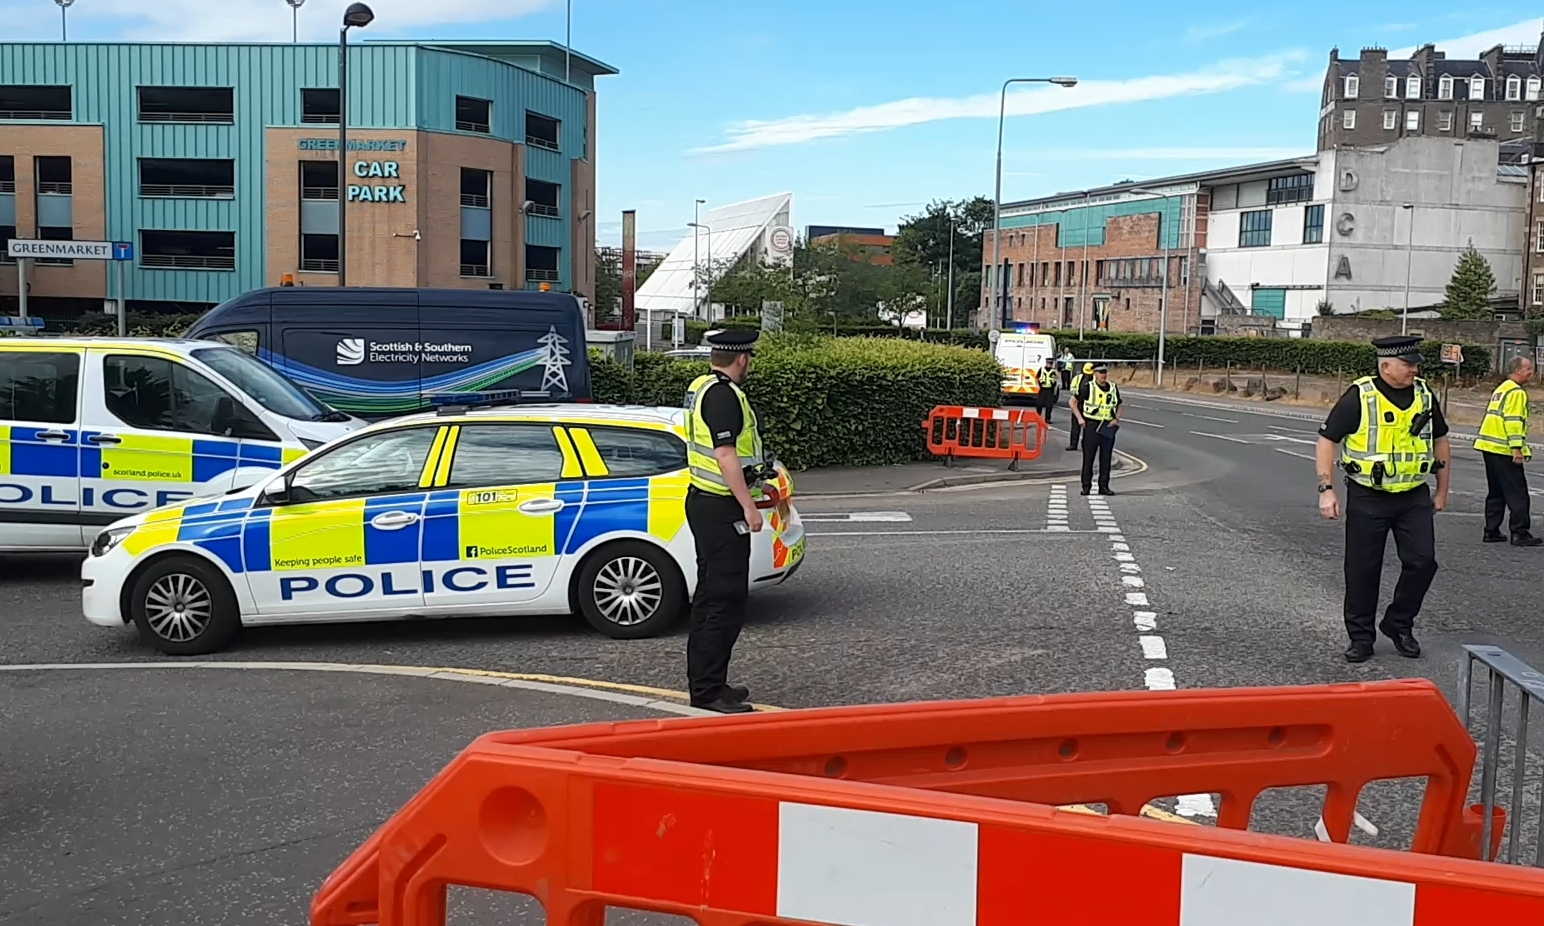 Police and electrical engineers at the scene.